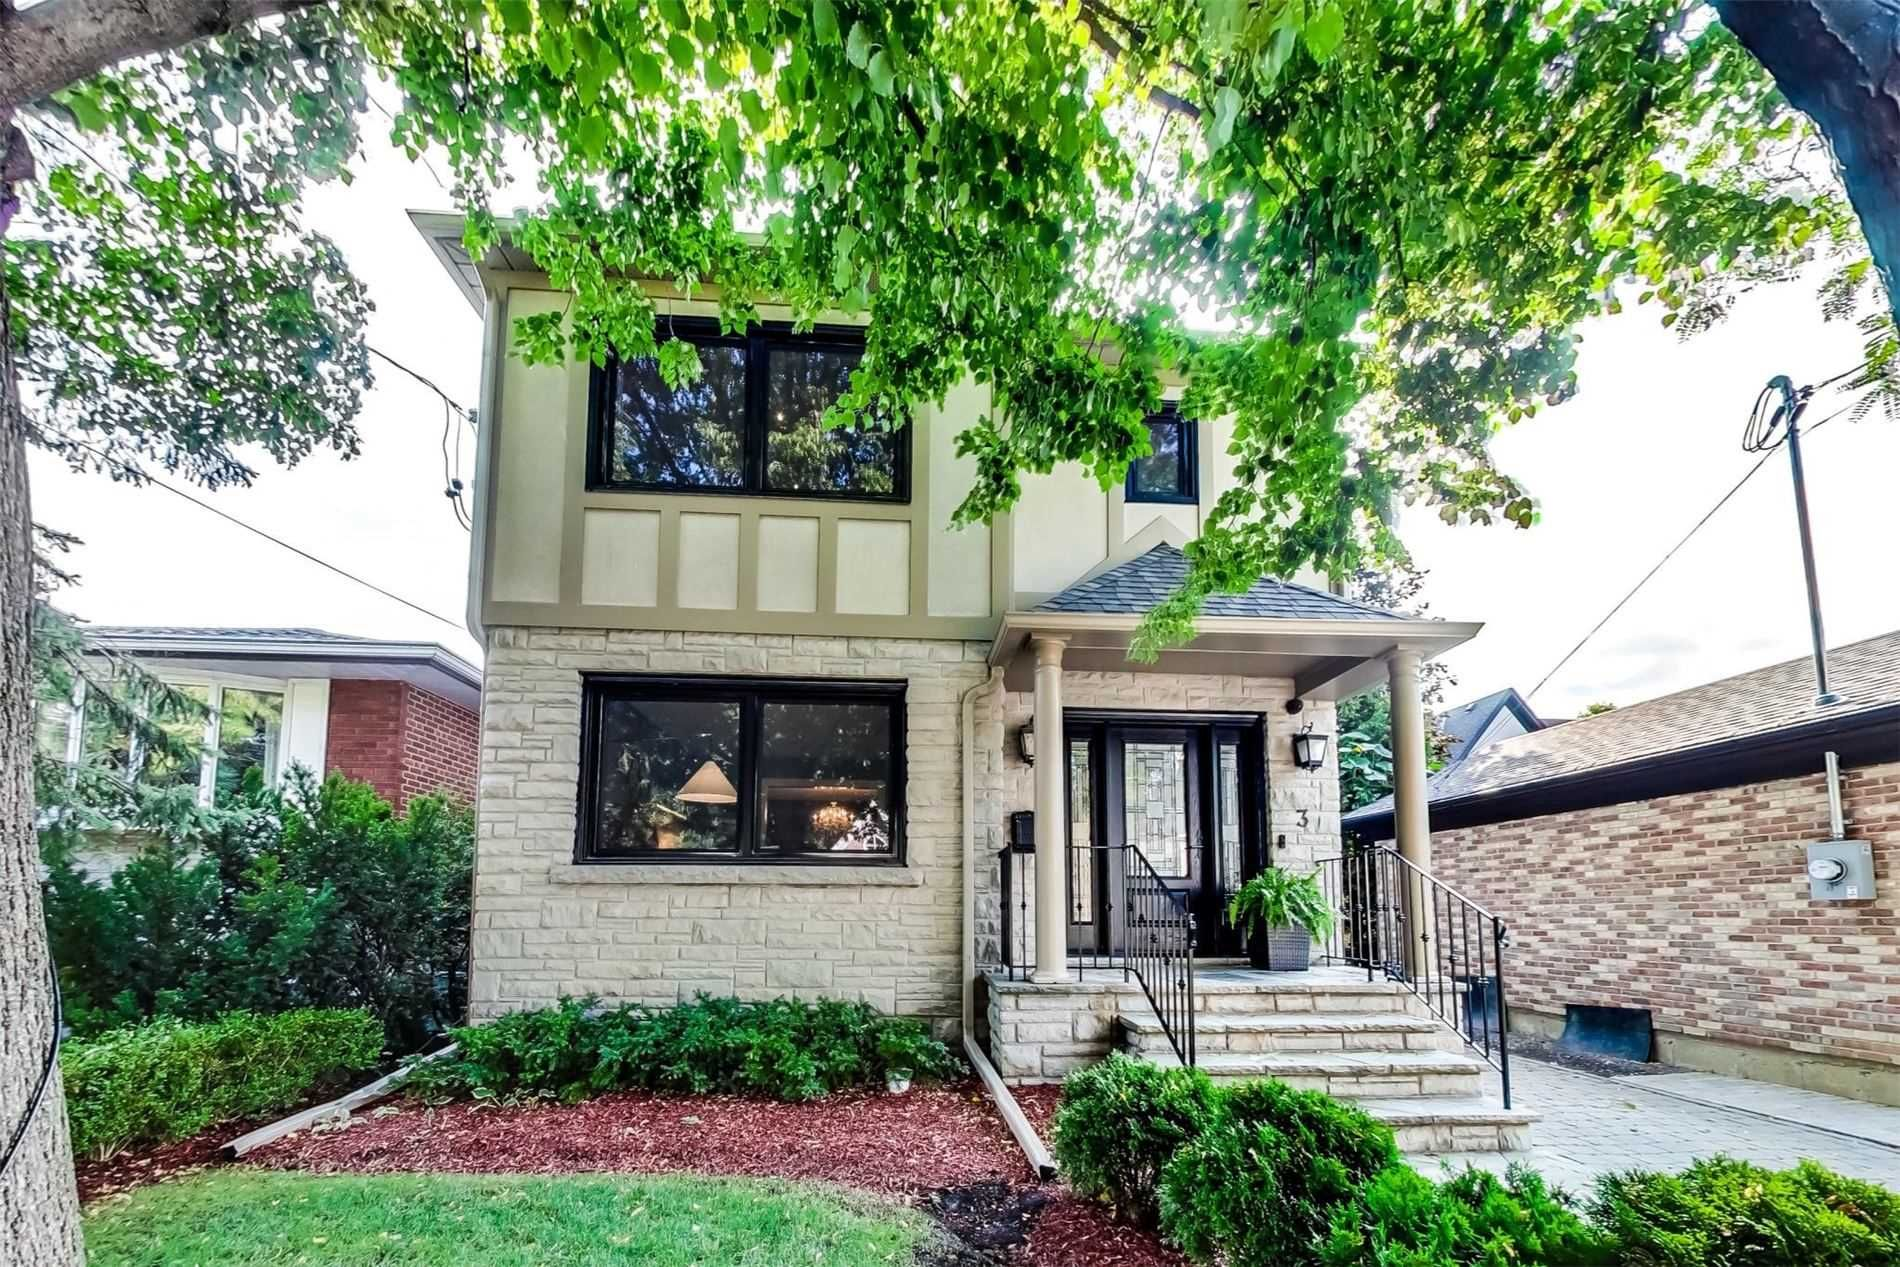 Main Photo: 3 Walford Road in Toronto: Kingsway South House (2-Storey) for sale (Toronto W08)  : MLS®# W5361475